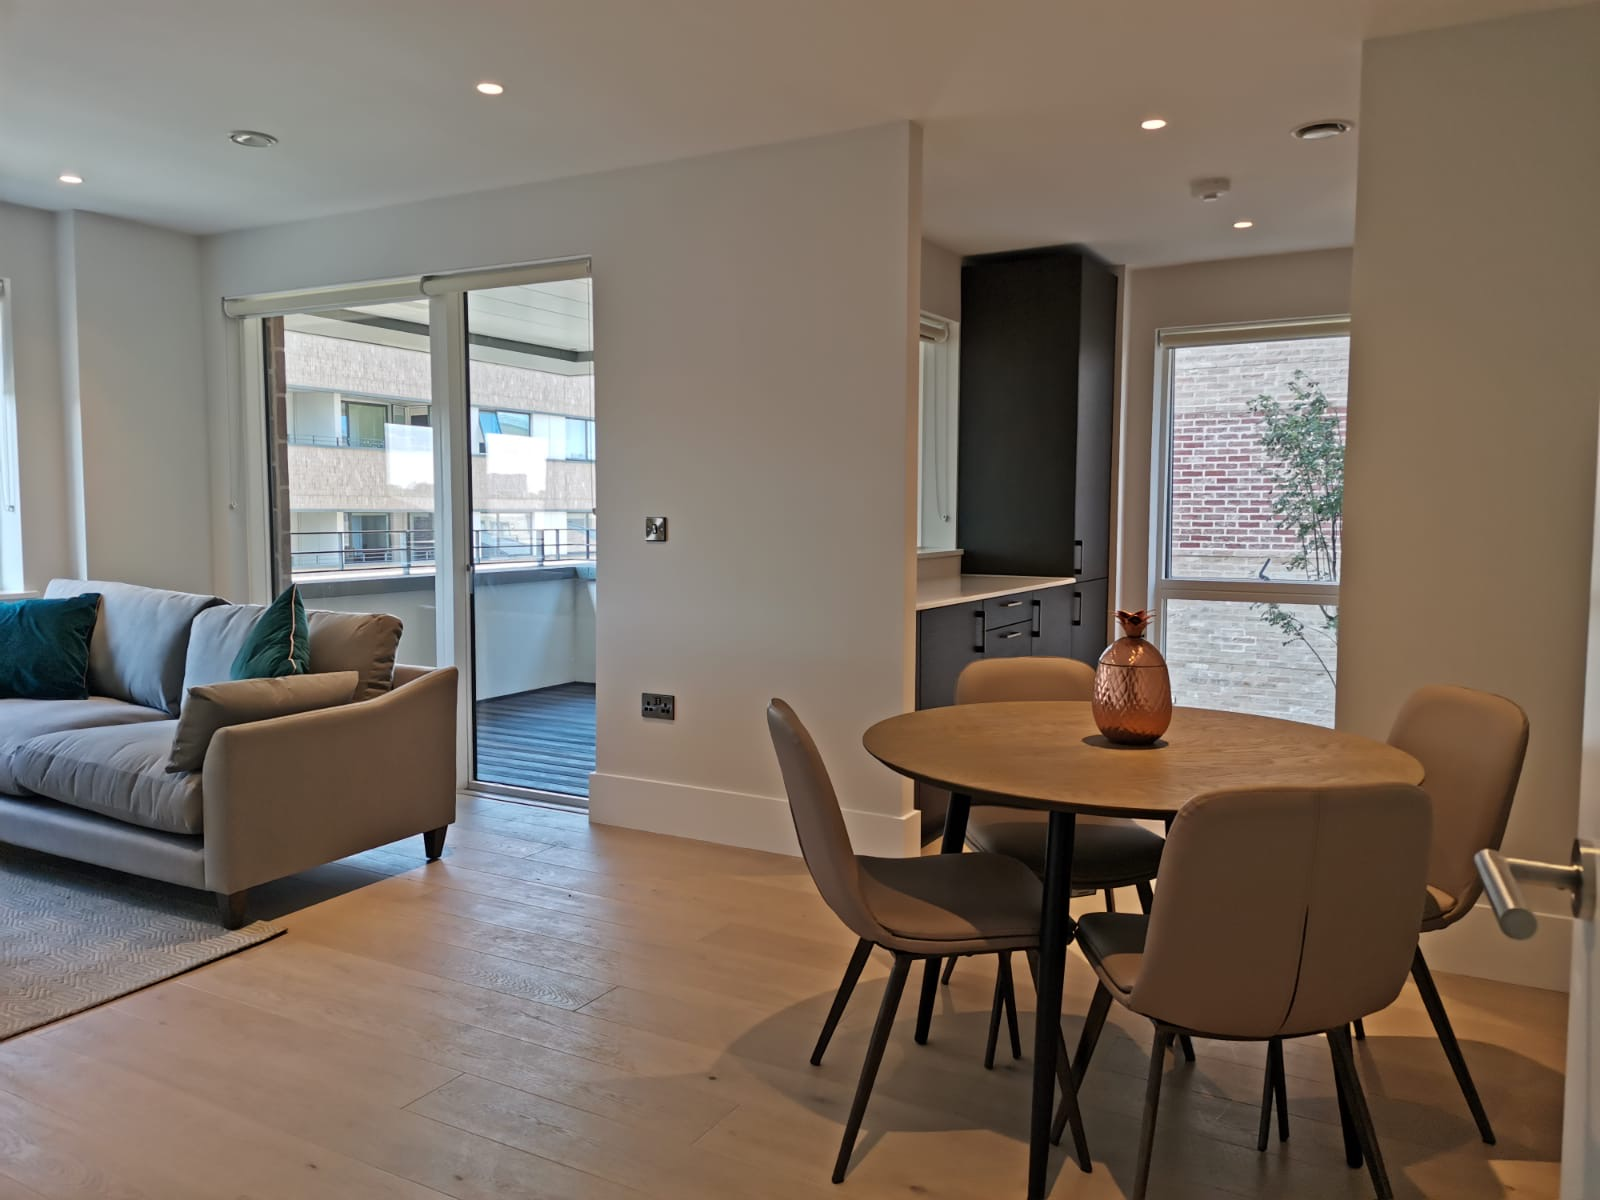 Living area at Heathrow North Apartments, Hounslow, London - Citybase Apartments